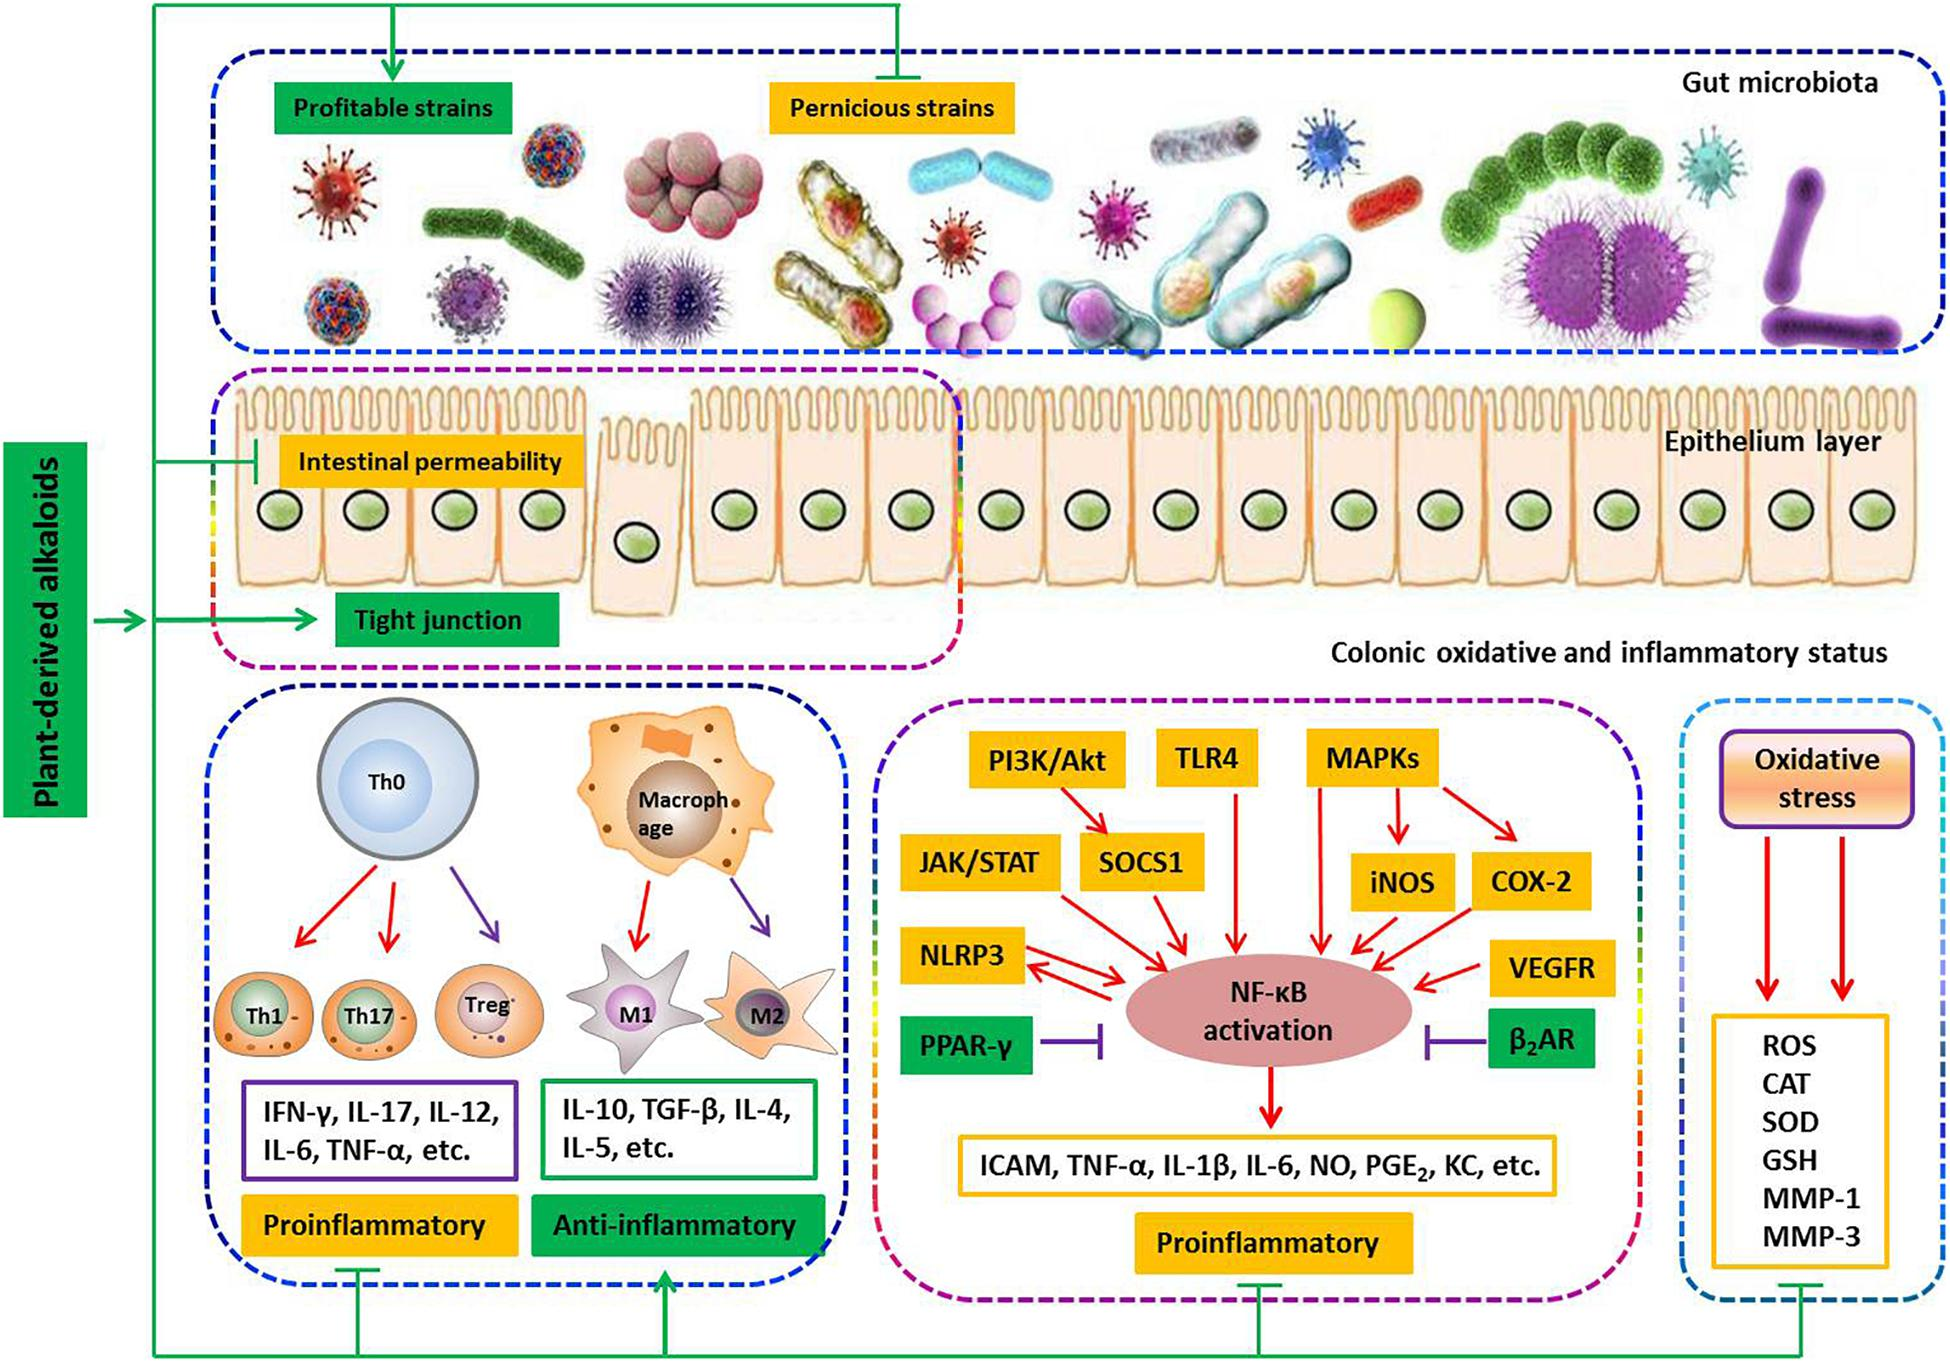 Frontiers | Plant-Derived Alkaloids: The Promising Disease